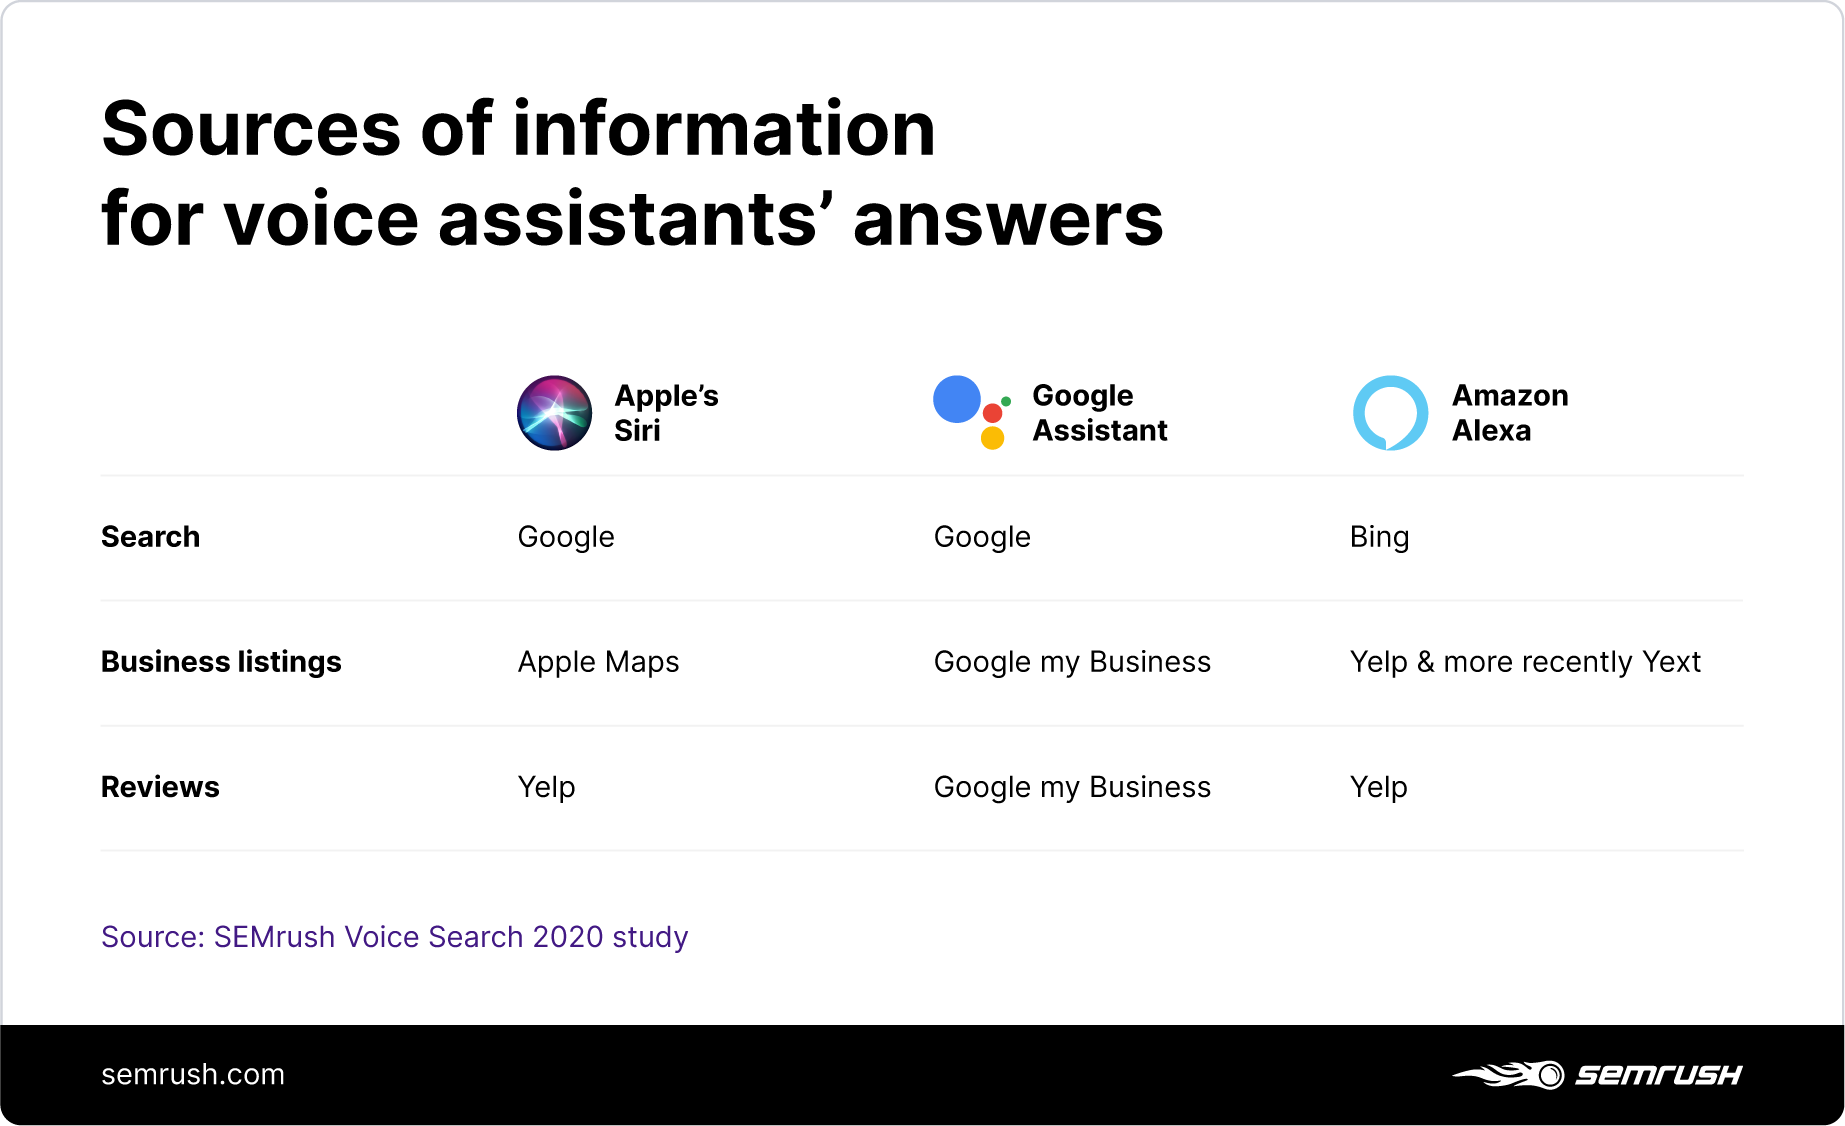 Sources of information for voice assistants' answers